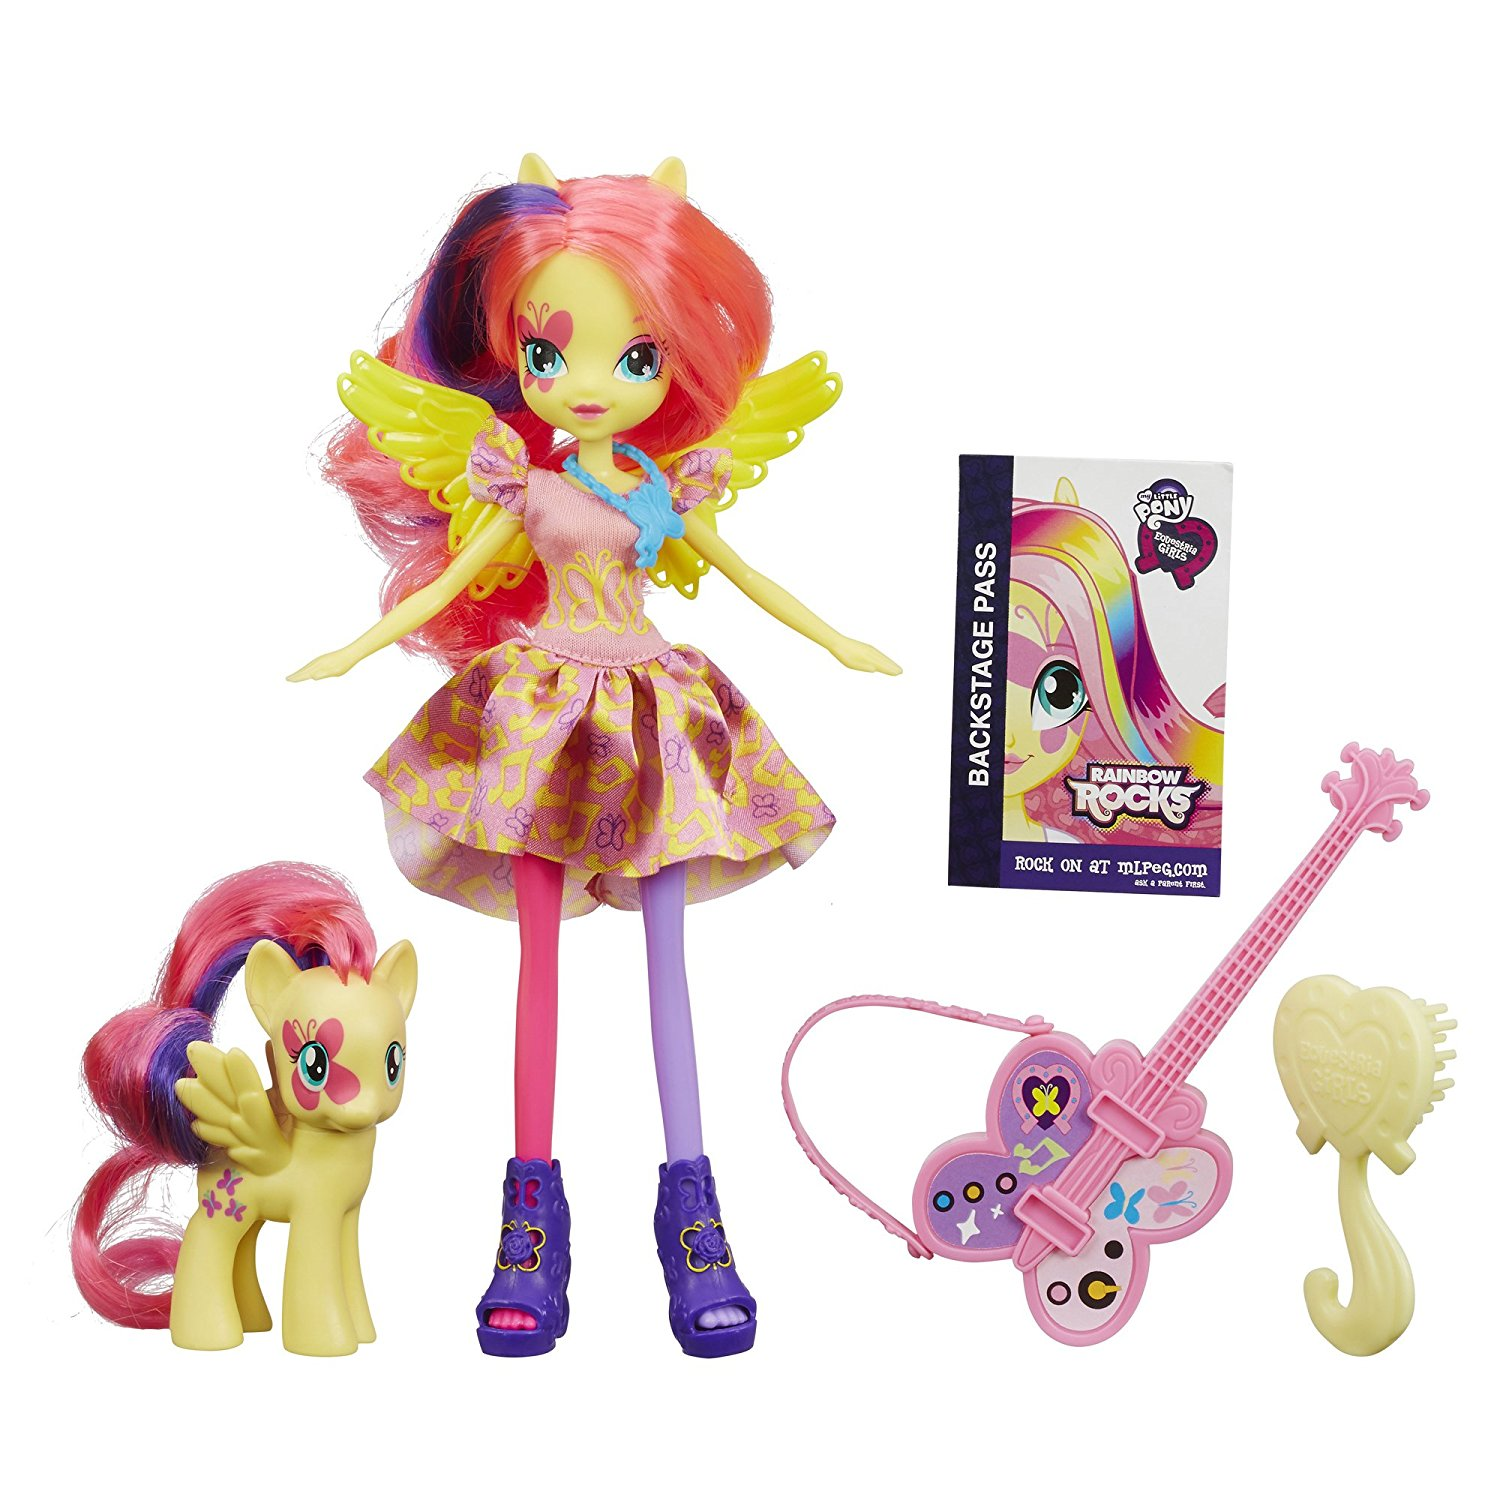 Equestria Girls Fluttershy Doll and Pony Set, Fluttershy Doll and Pony Set includes doll and pony figure By My Little Pony